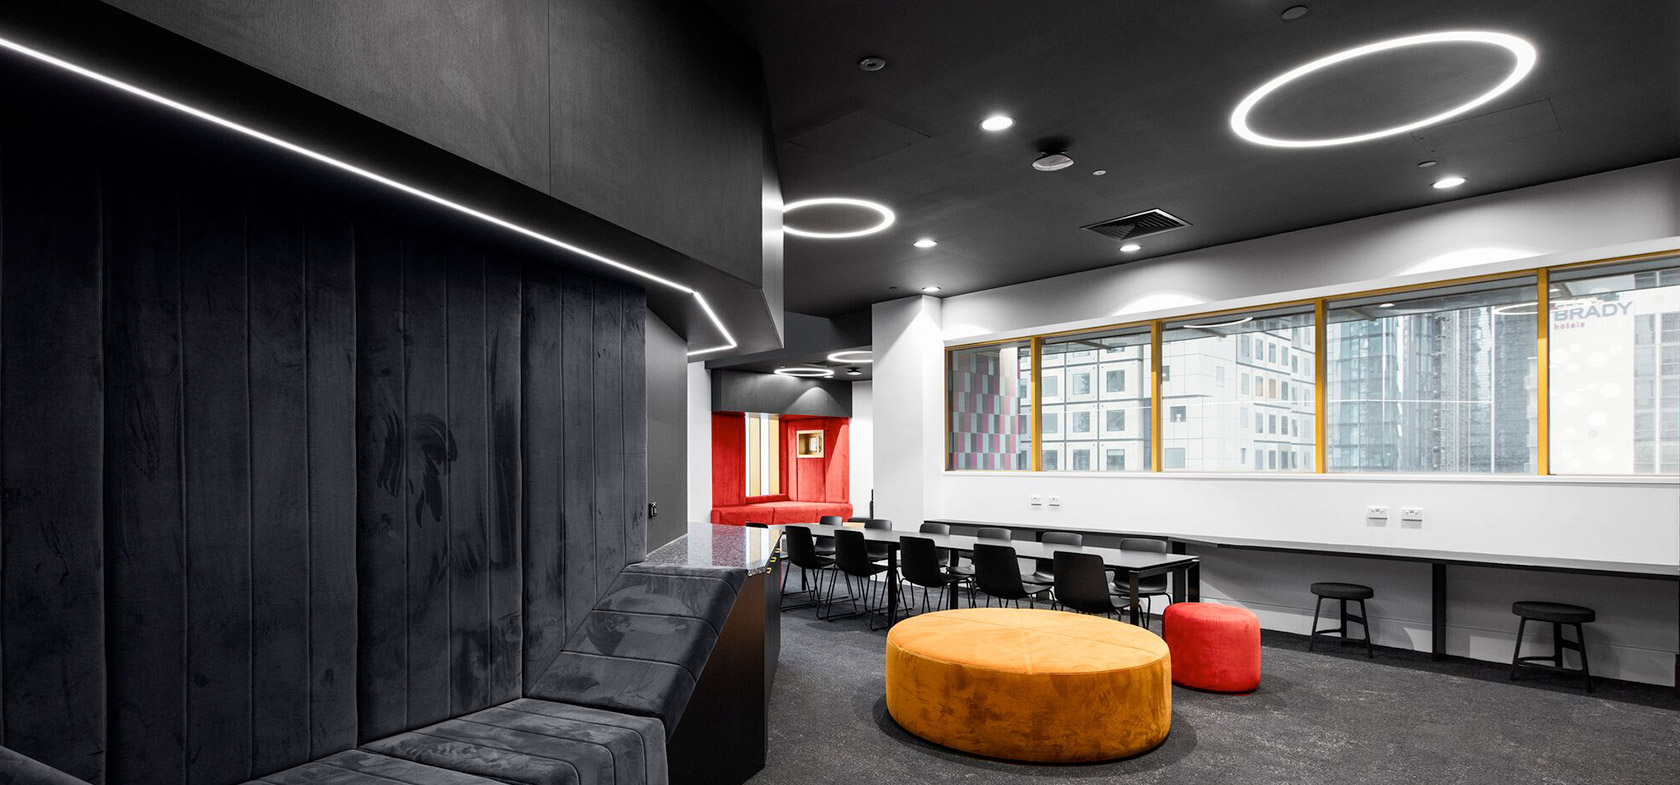 RMIT University School of Fashion and Textiles Building with fabric colour lounge seating